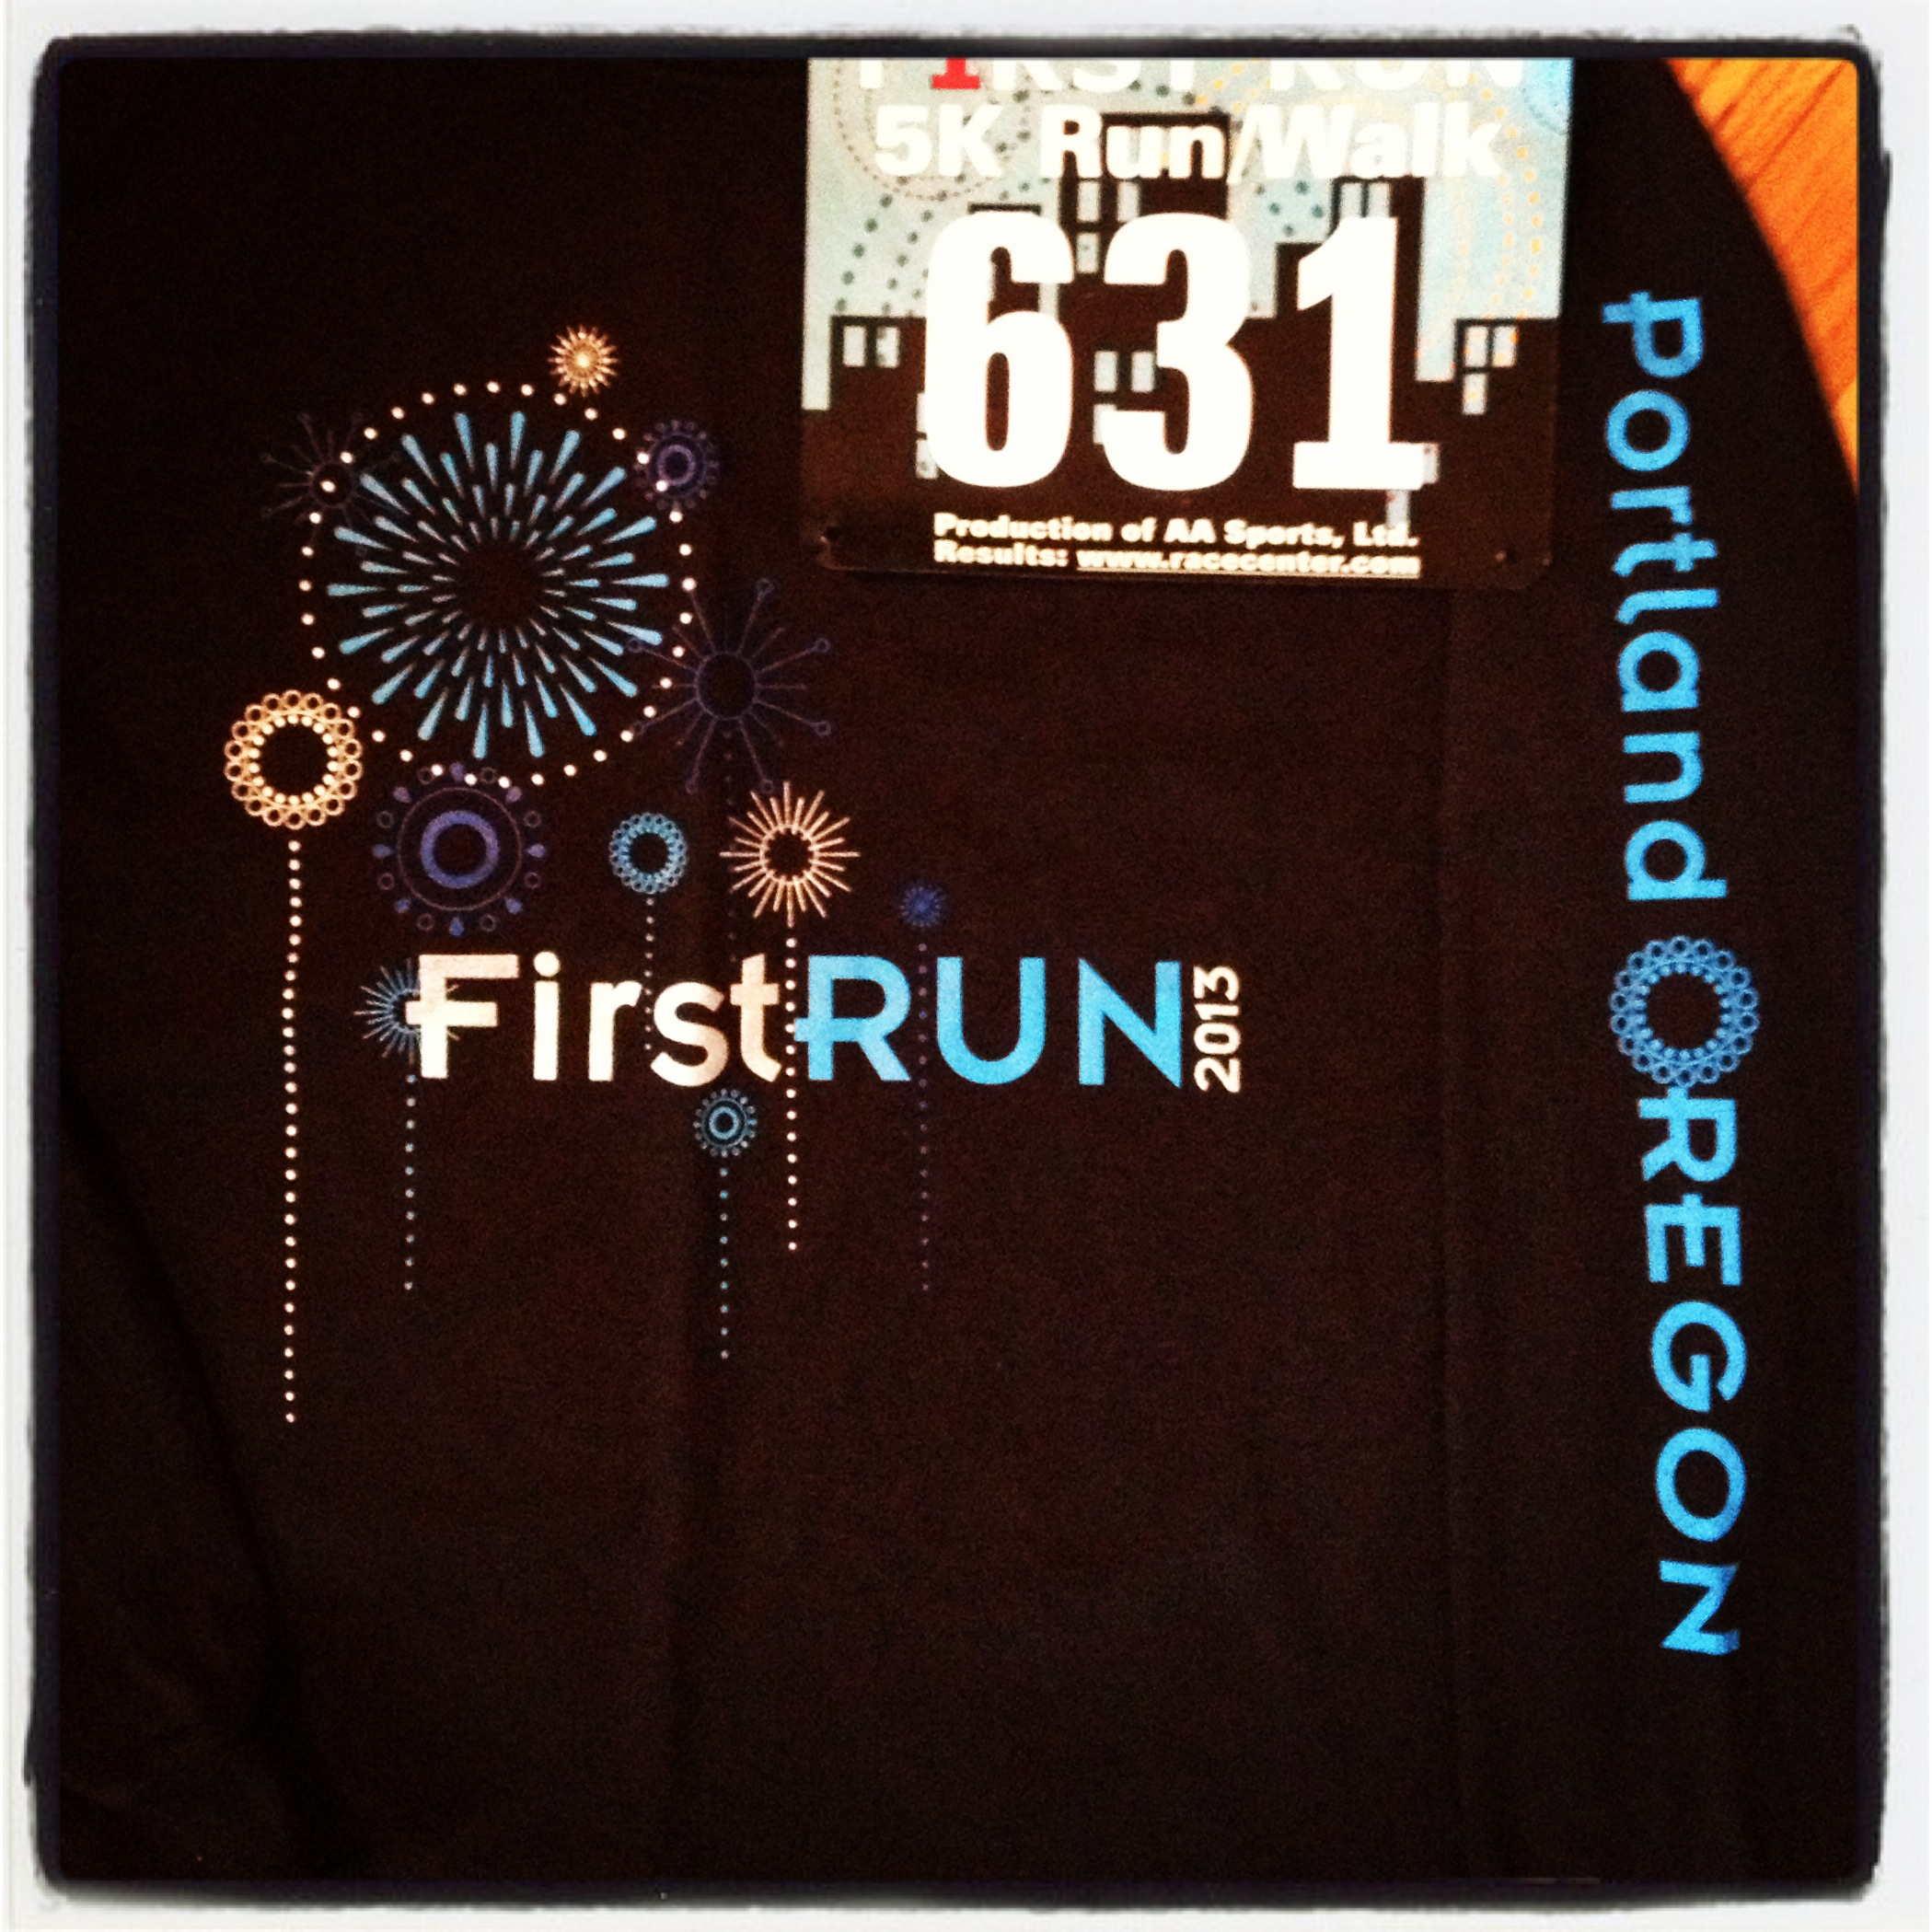 Bib and shirt all ready to go!